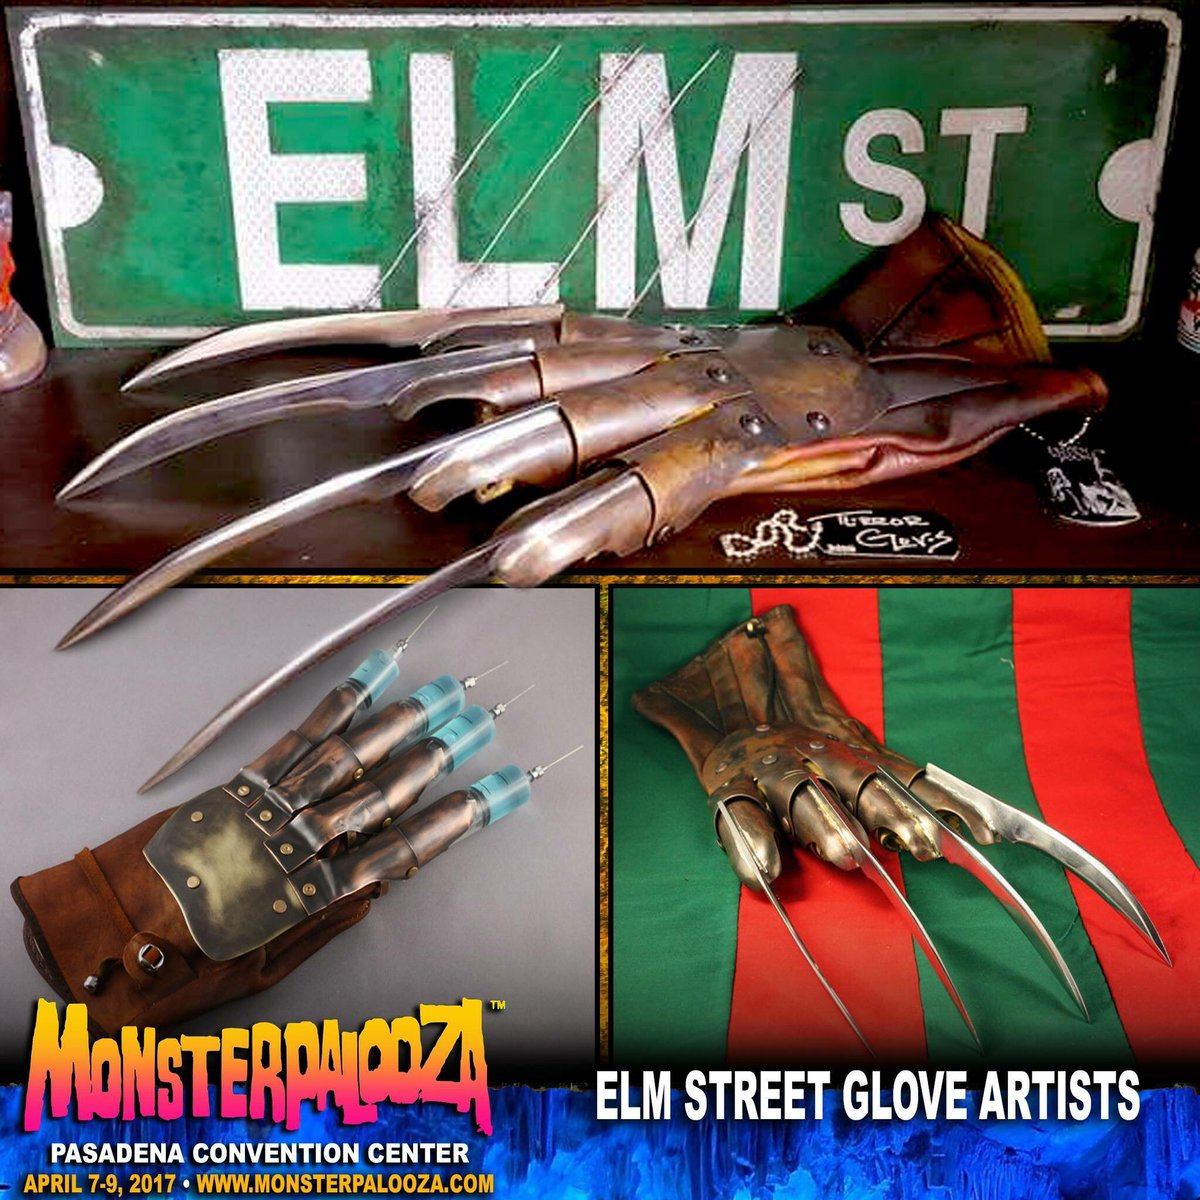 .@MONSTERPALOOZA1 will be featuring artists who specialize in making the iconic #FreddyKrueger Gloves. #anightmareonelmstreet<br>http://pic.twitter.com/tLWd6UaUGq